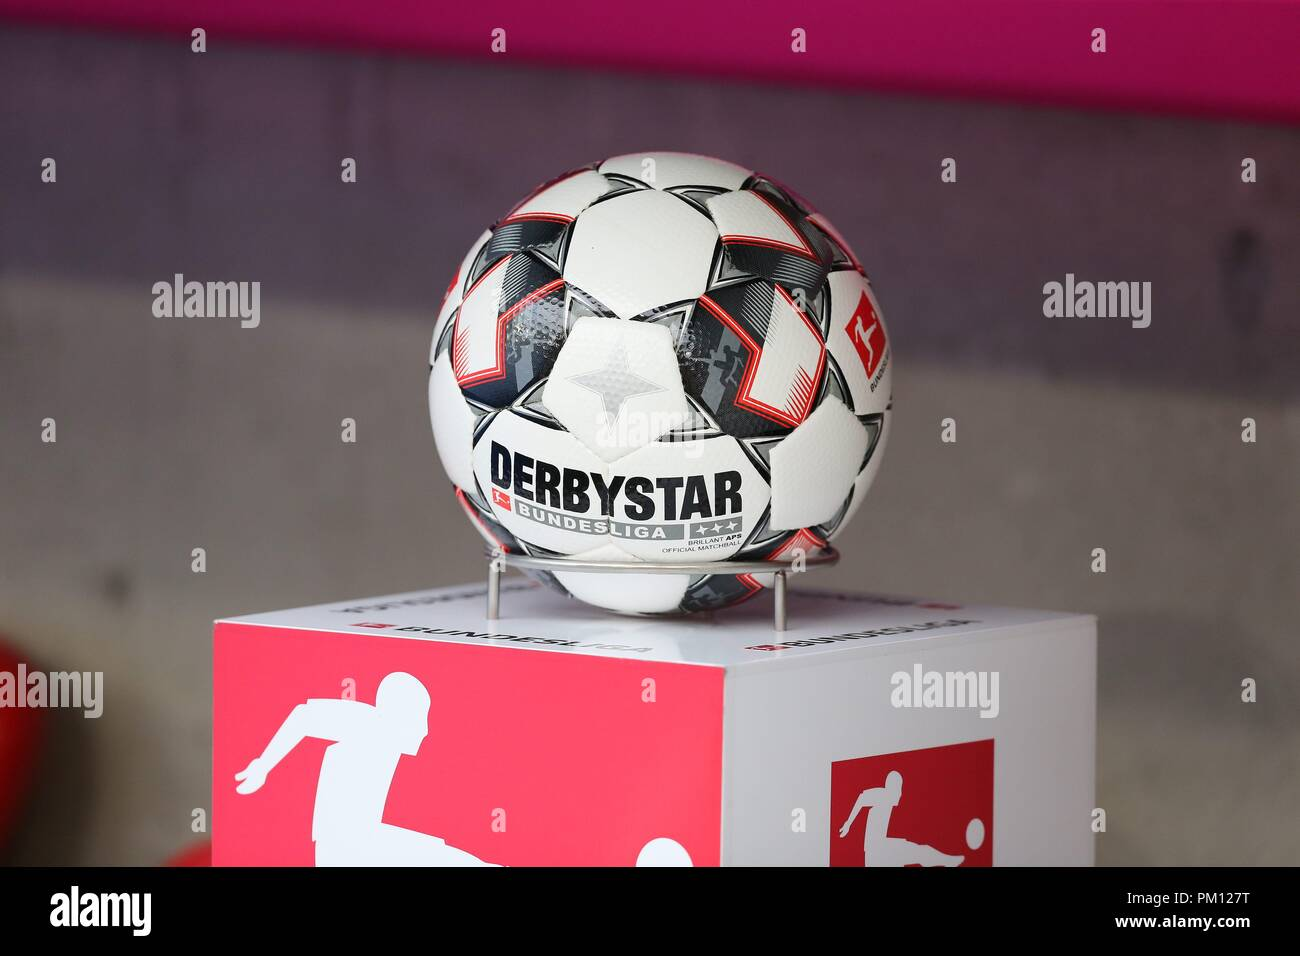 firo: 15.09.2018 Fuvuball, Football: 1.Bundesliga FC Bayern Munich - Bayer 04 Leverkusen, Derbystar, Spielball, Feature, Depositor | usage worldwide Stock Photo